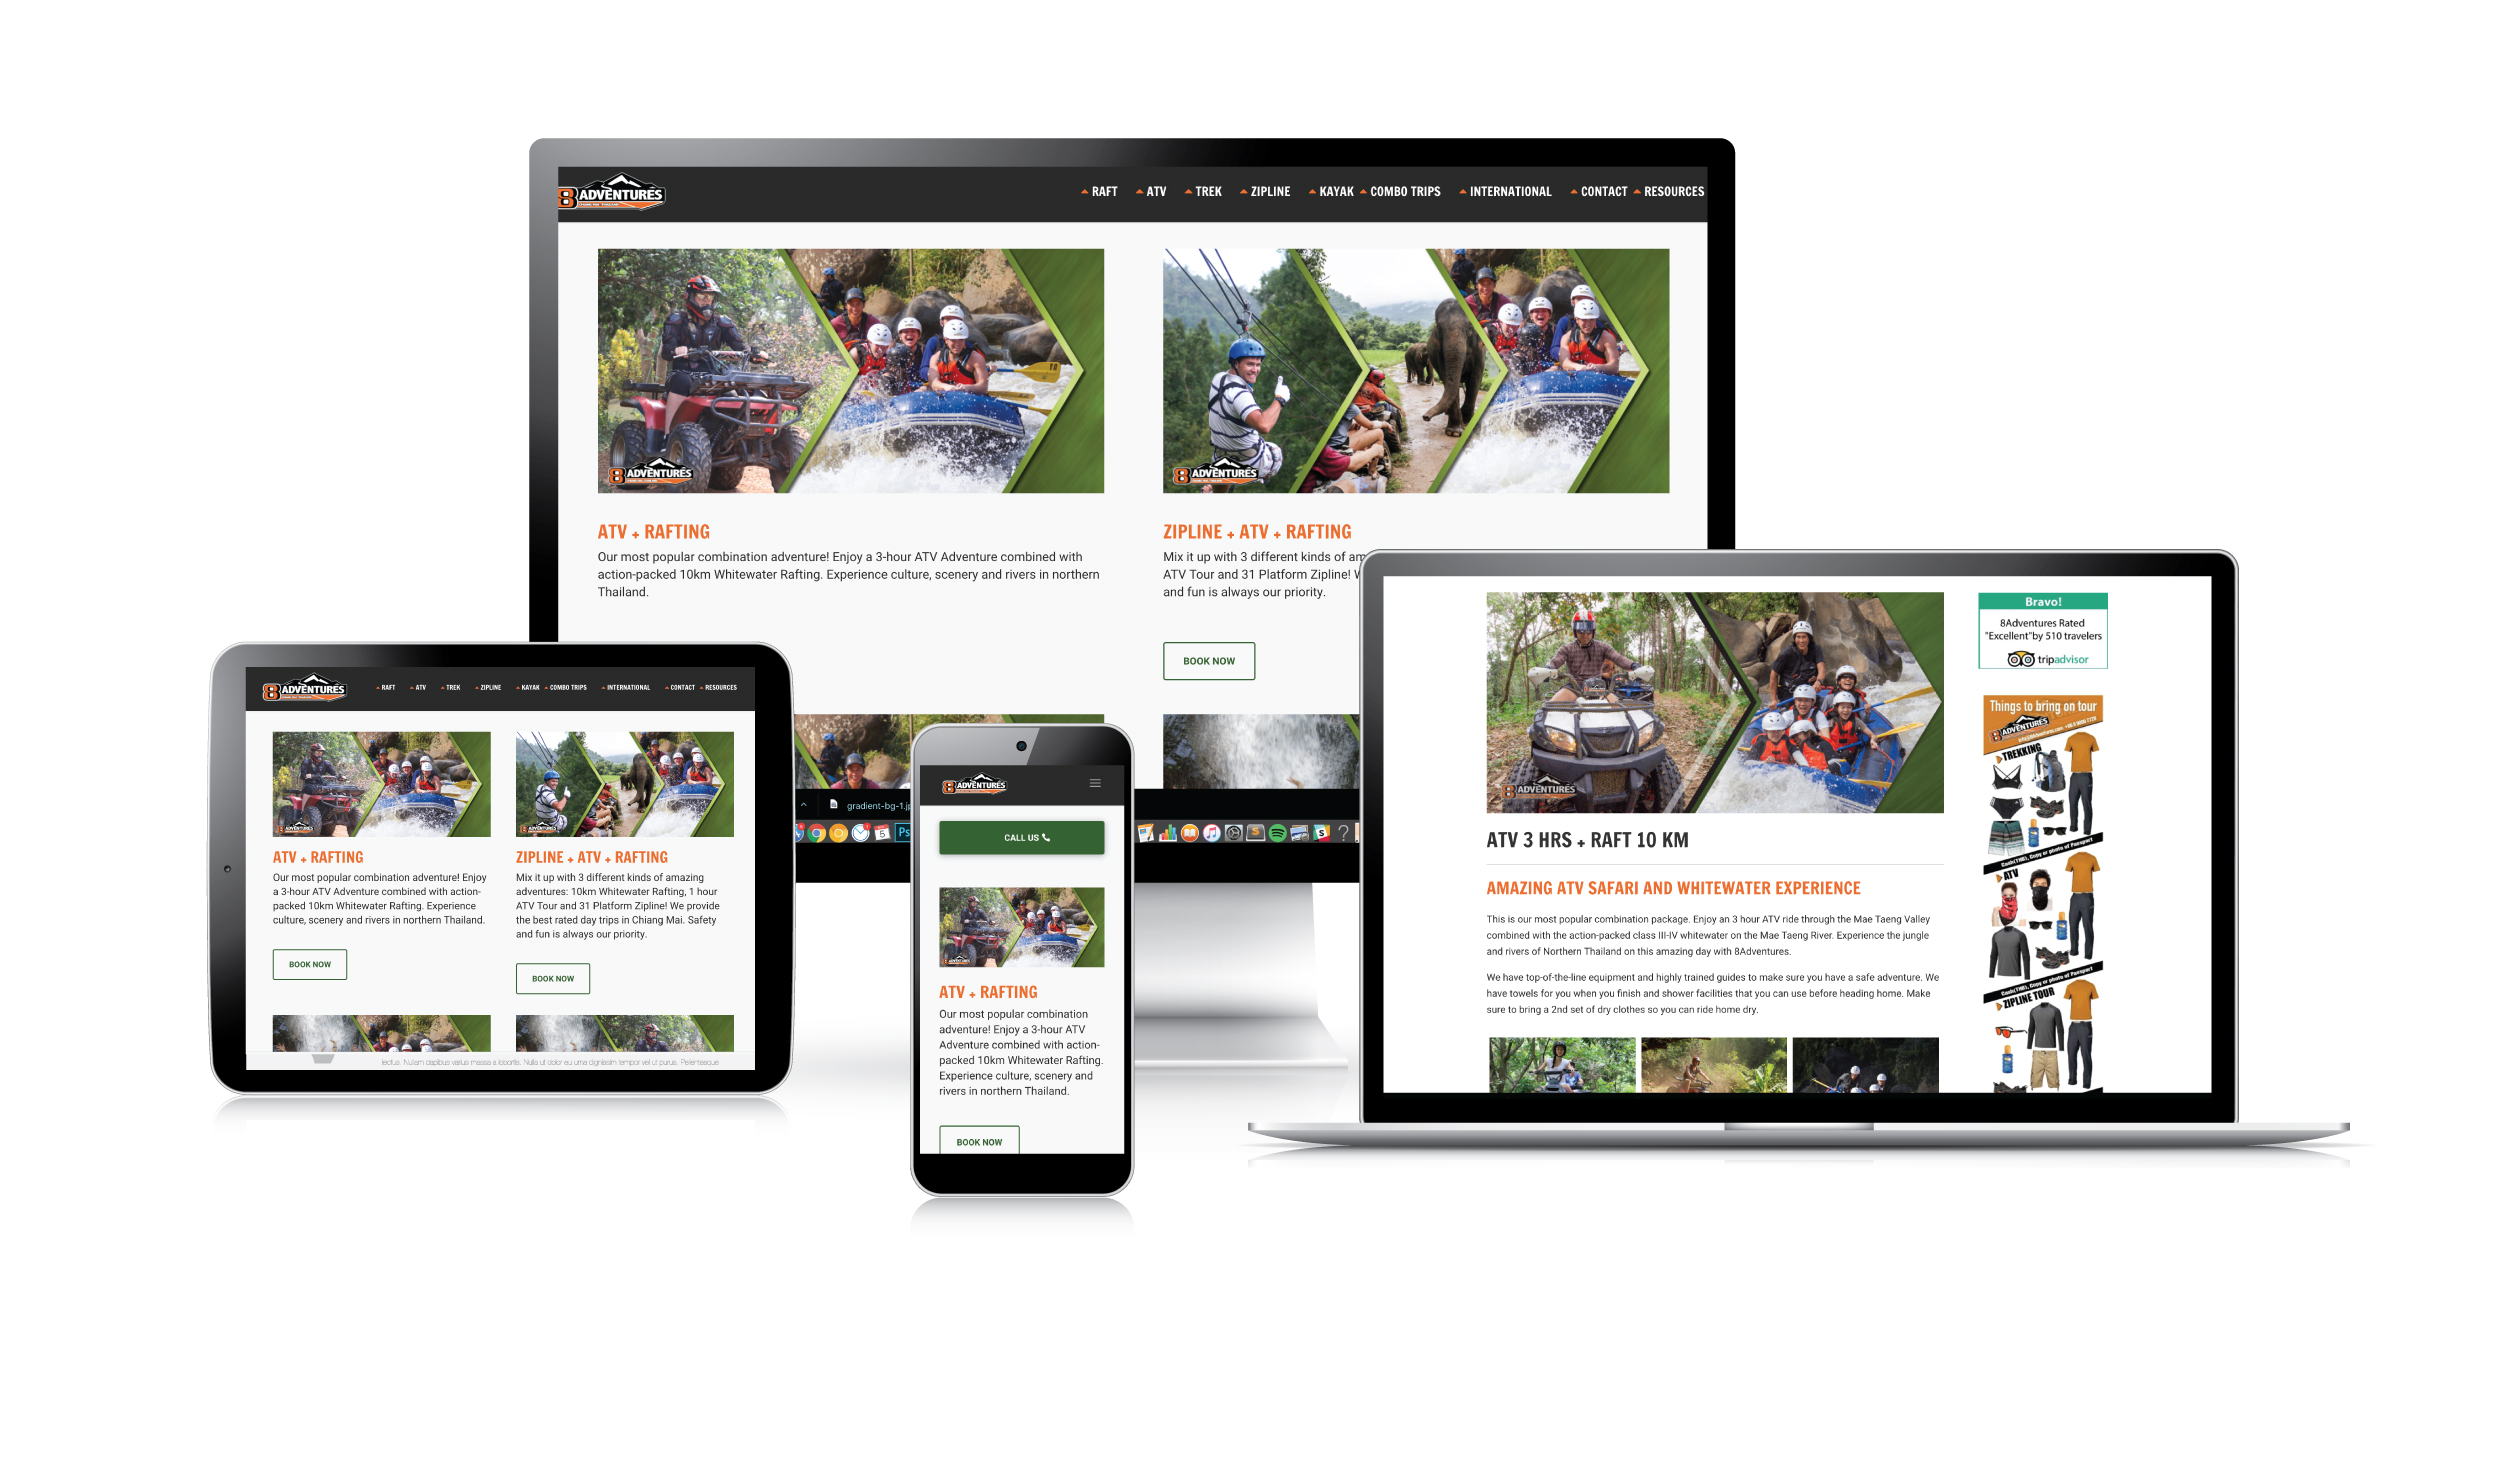 Responsive-Device-Showcase-8-adventures.jpg